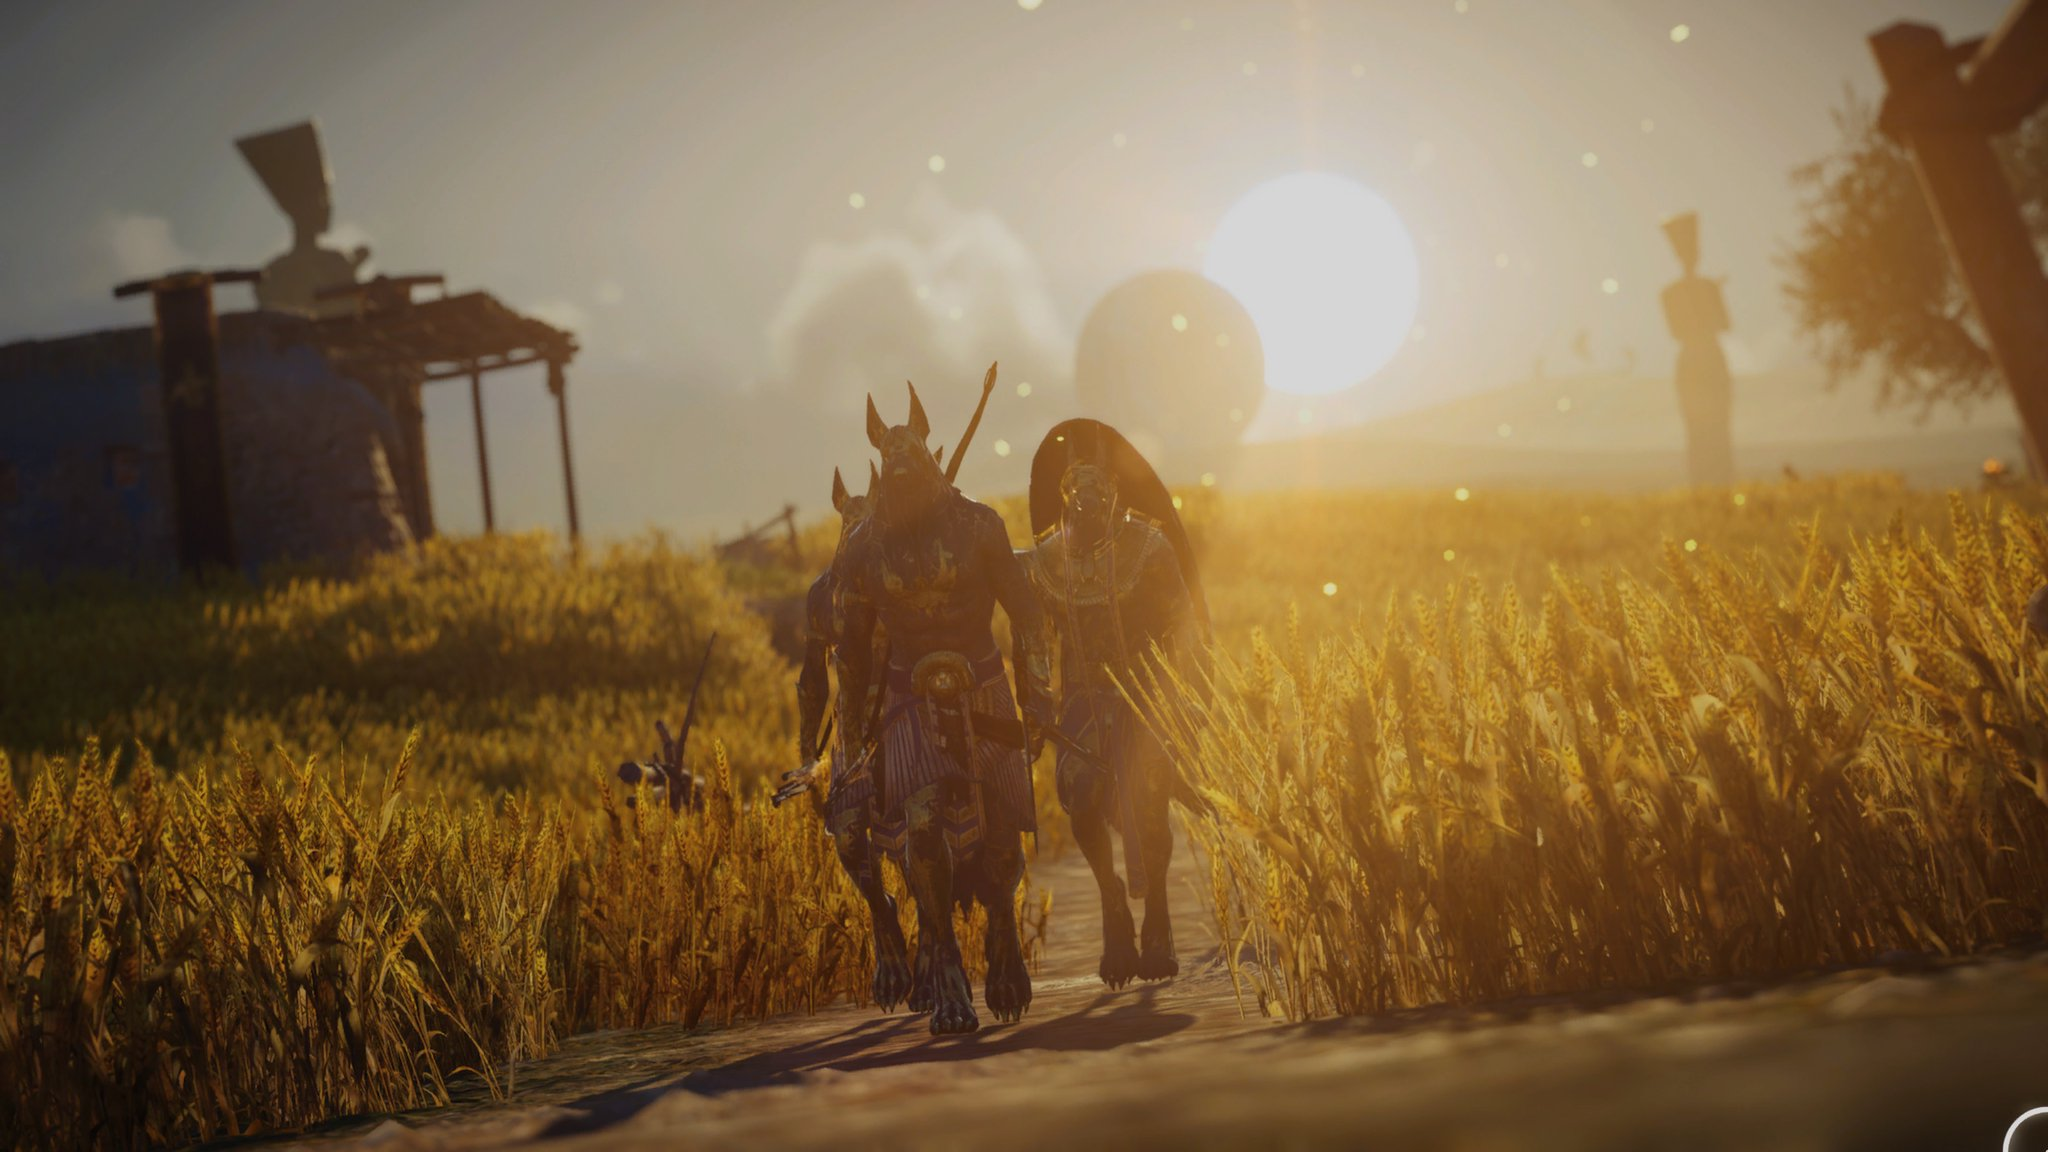 Assassin's Creed: Origins - The Curse of the Pharaohs - Assassin's Creed: Origins DLC